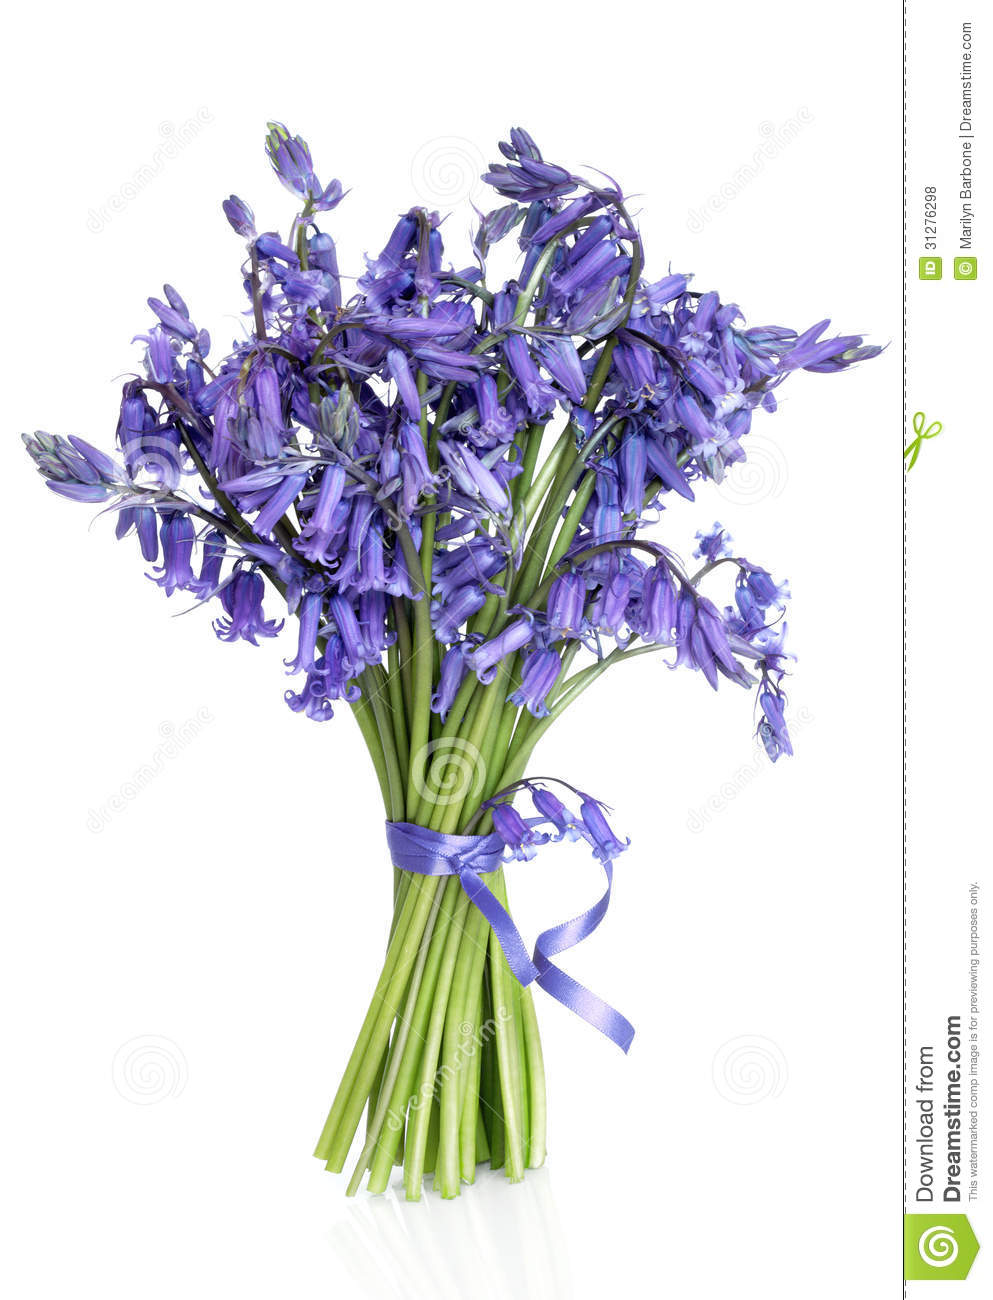 Bluebell flower posy stock photo image of flora bluebells 31276298 bluebell flower posy mightylinksfo